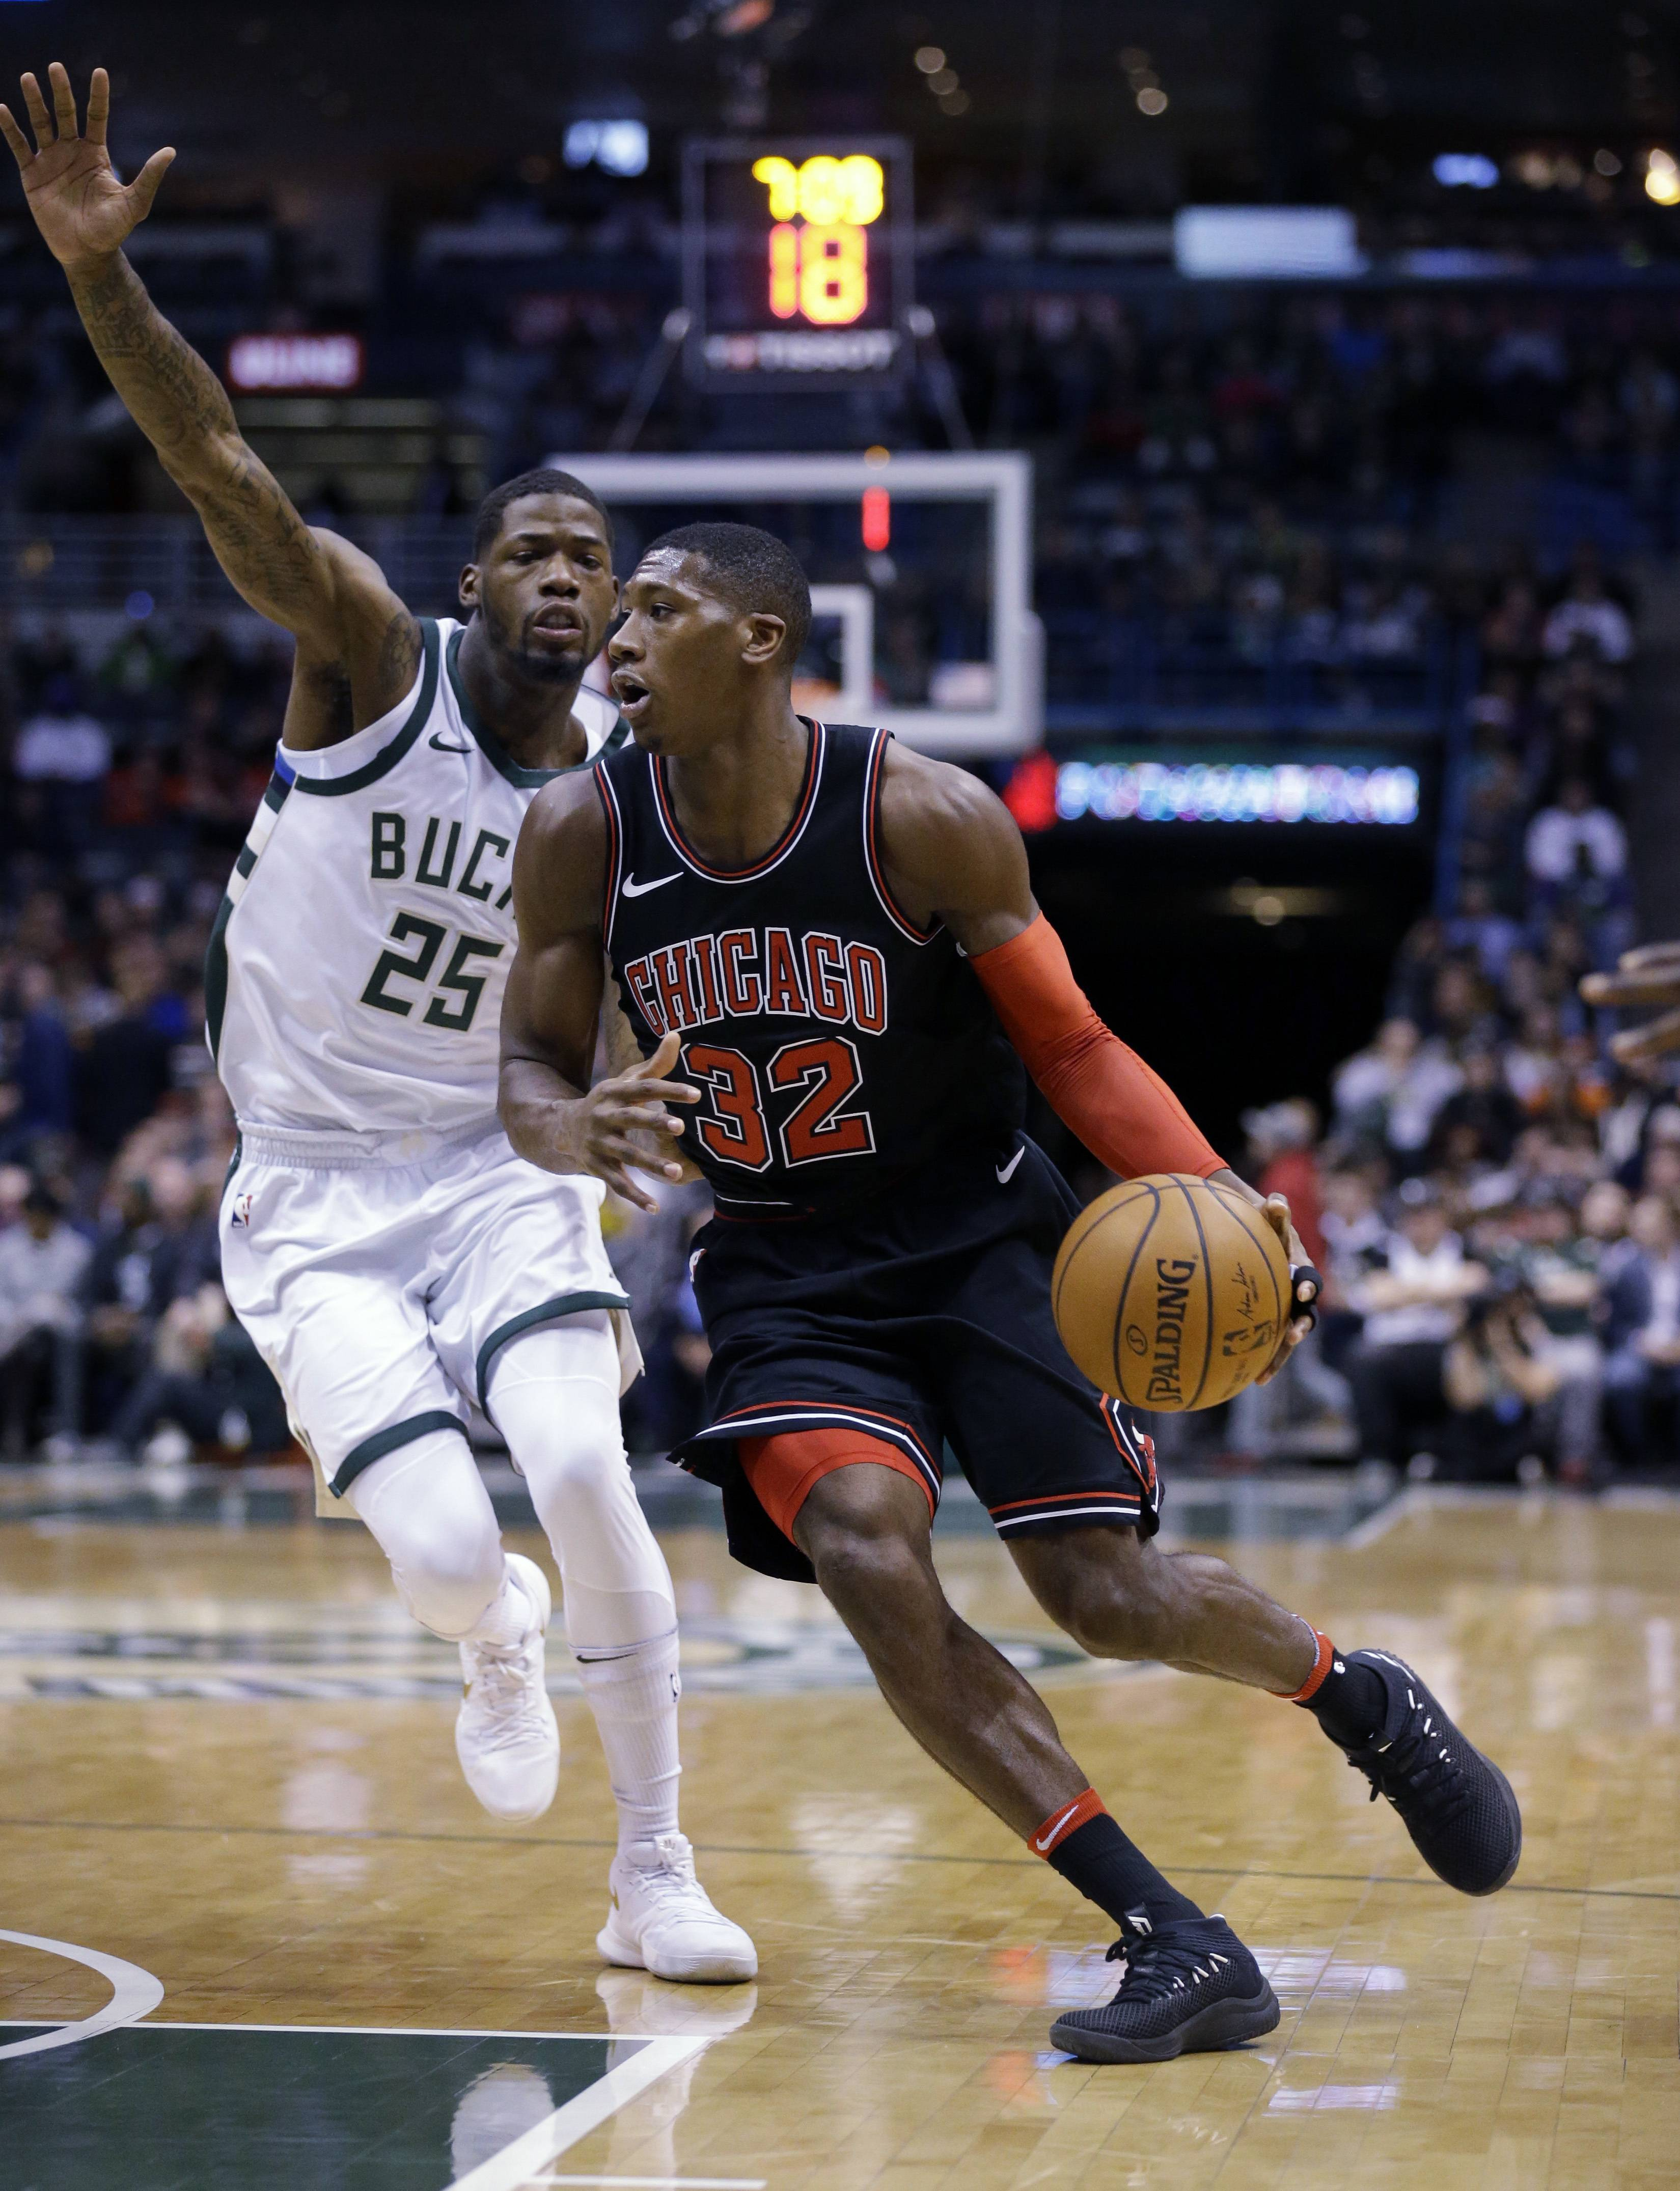 Mirotic, Dunn lead Chicago Bulls to another win in Milwaukee